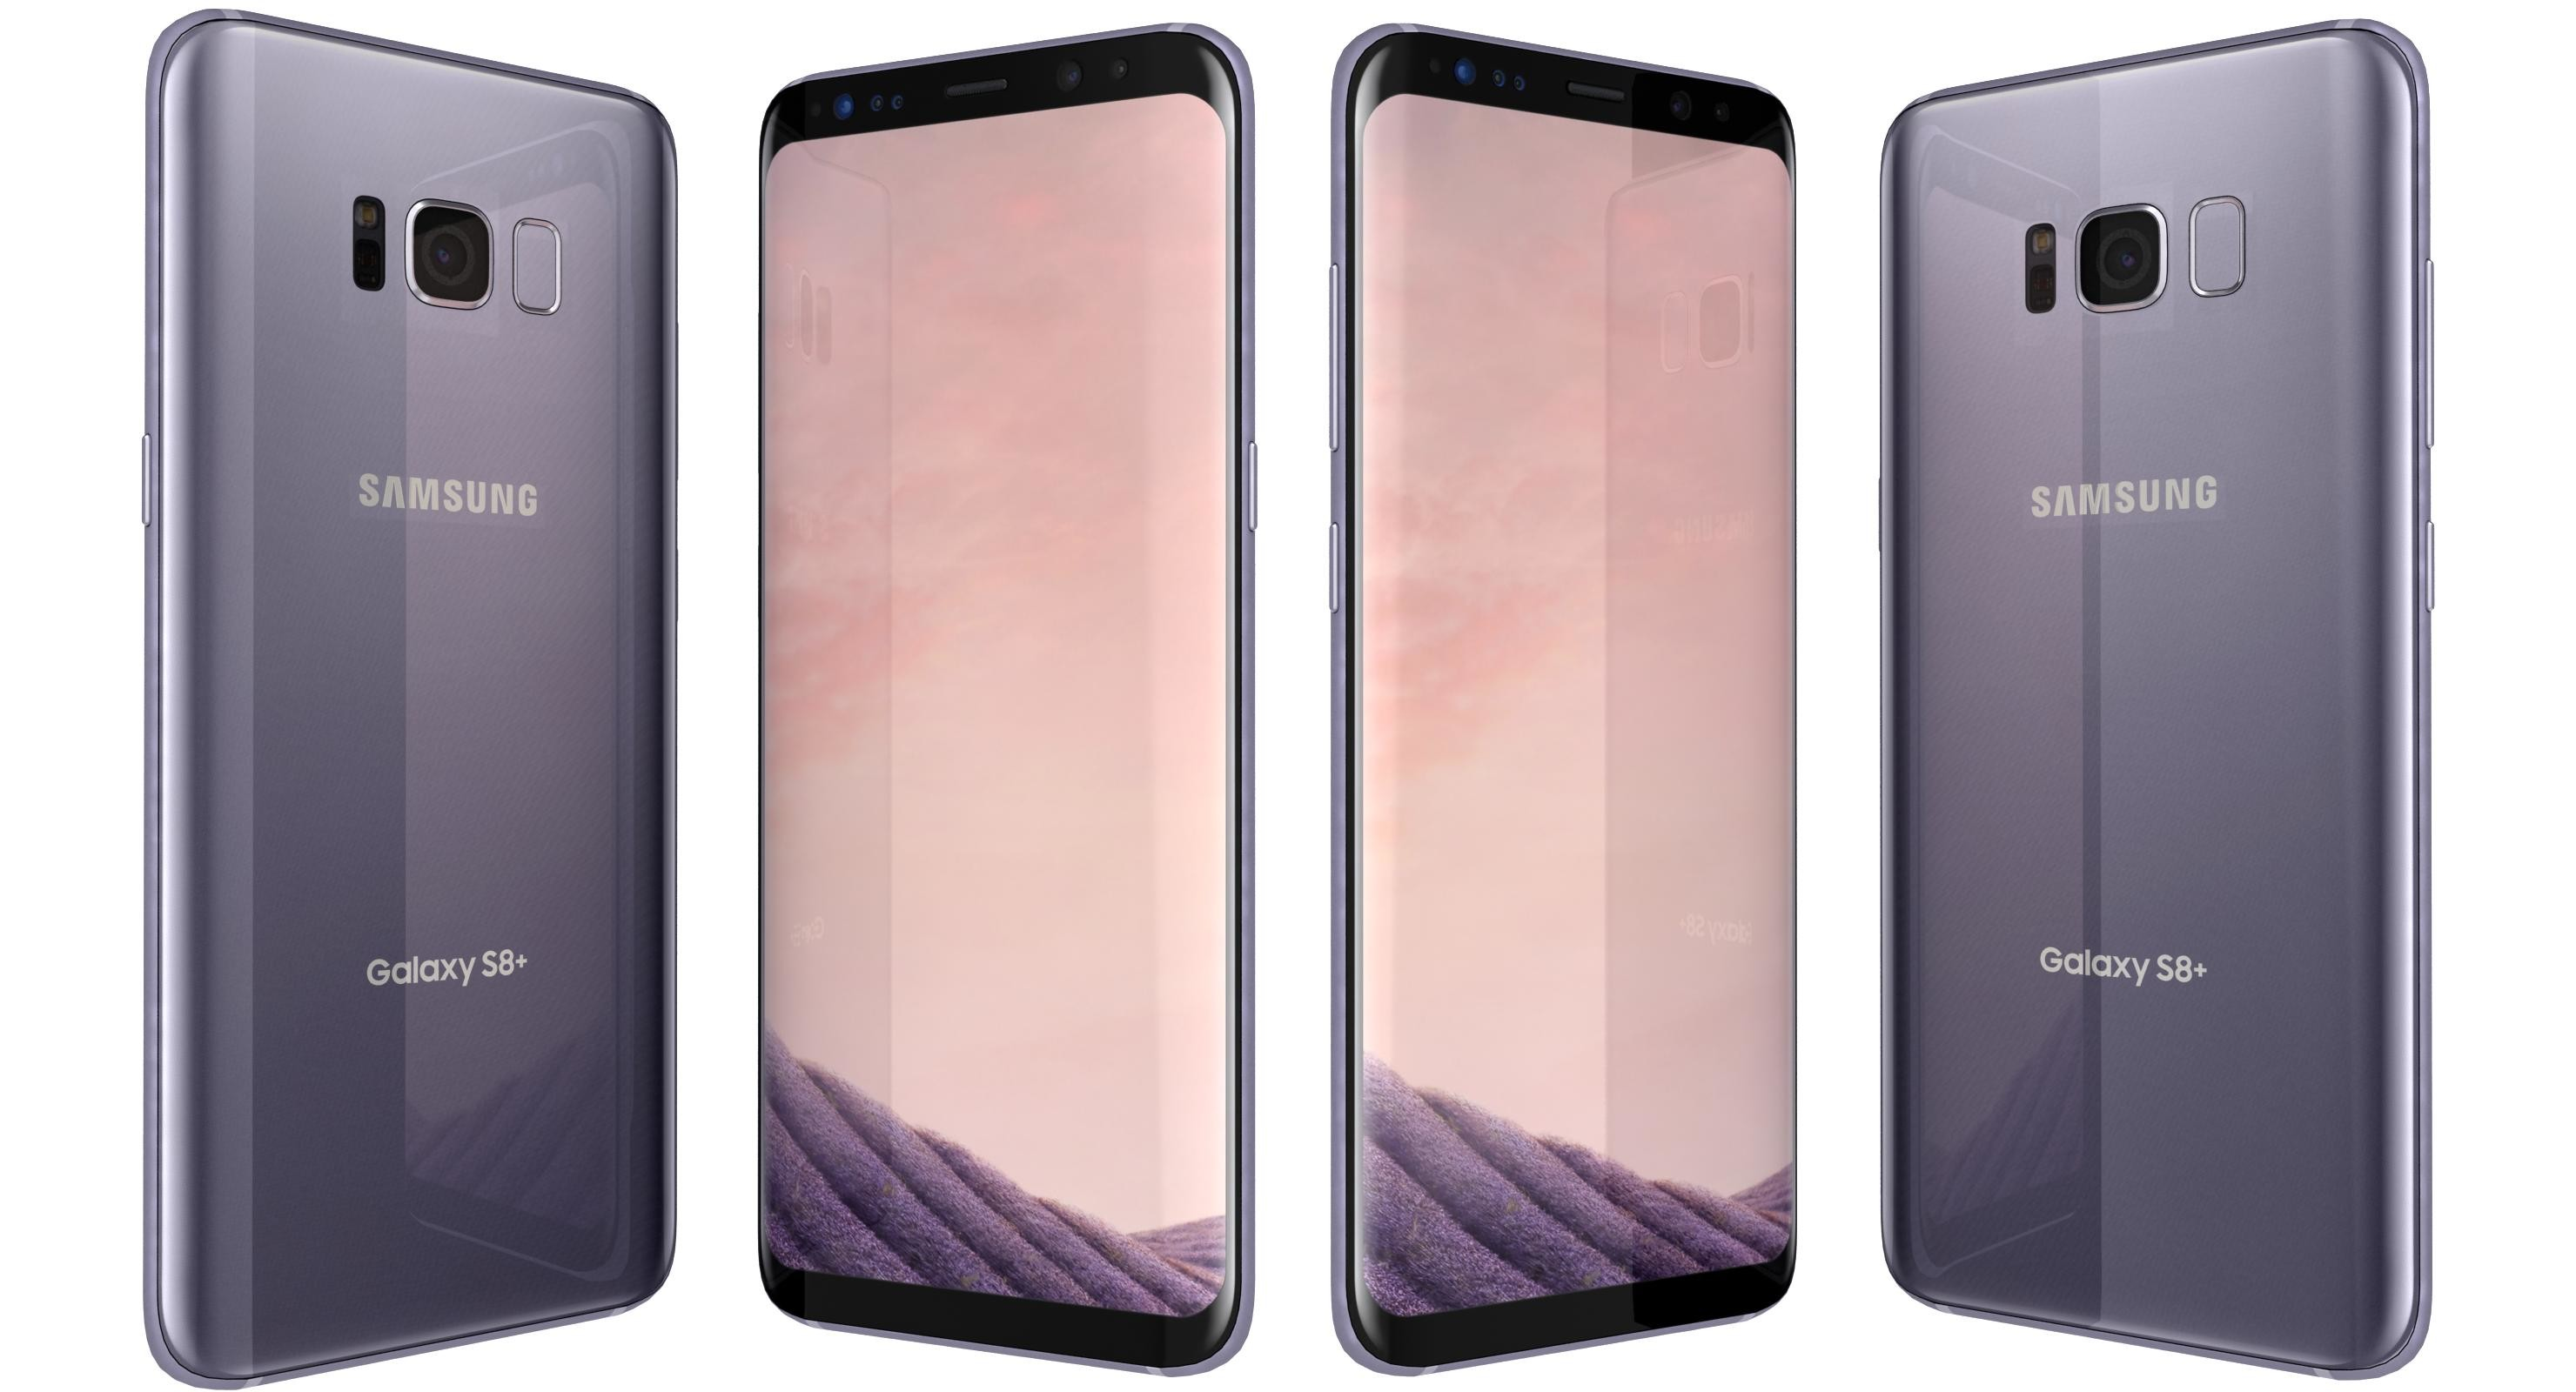 samsung galaxy s8 plus orchid gray. Black Bedroom Furniture Sets. Home Design Ideas